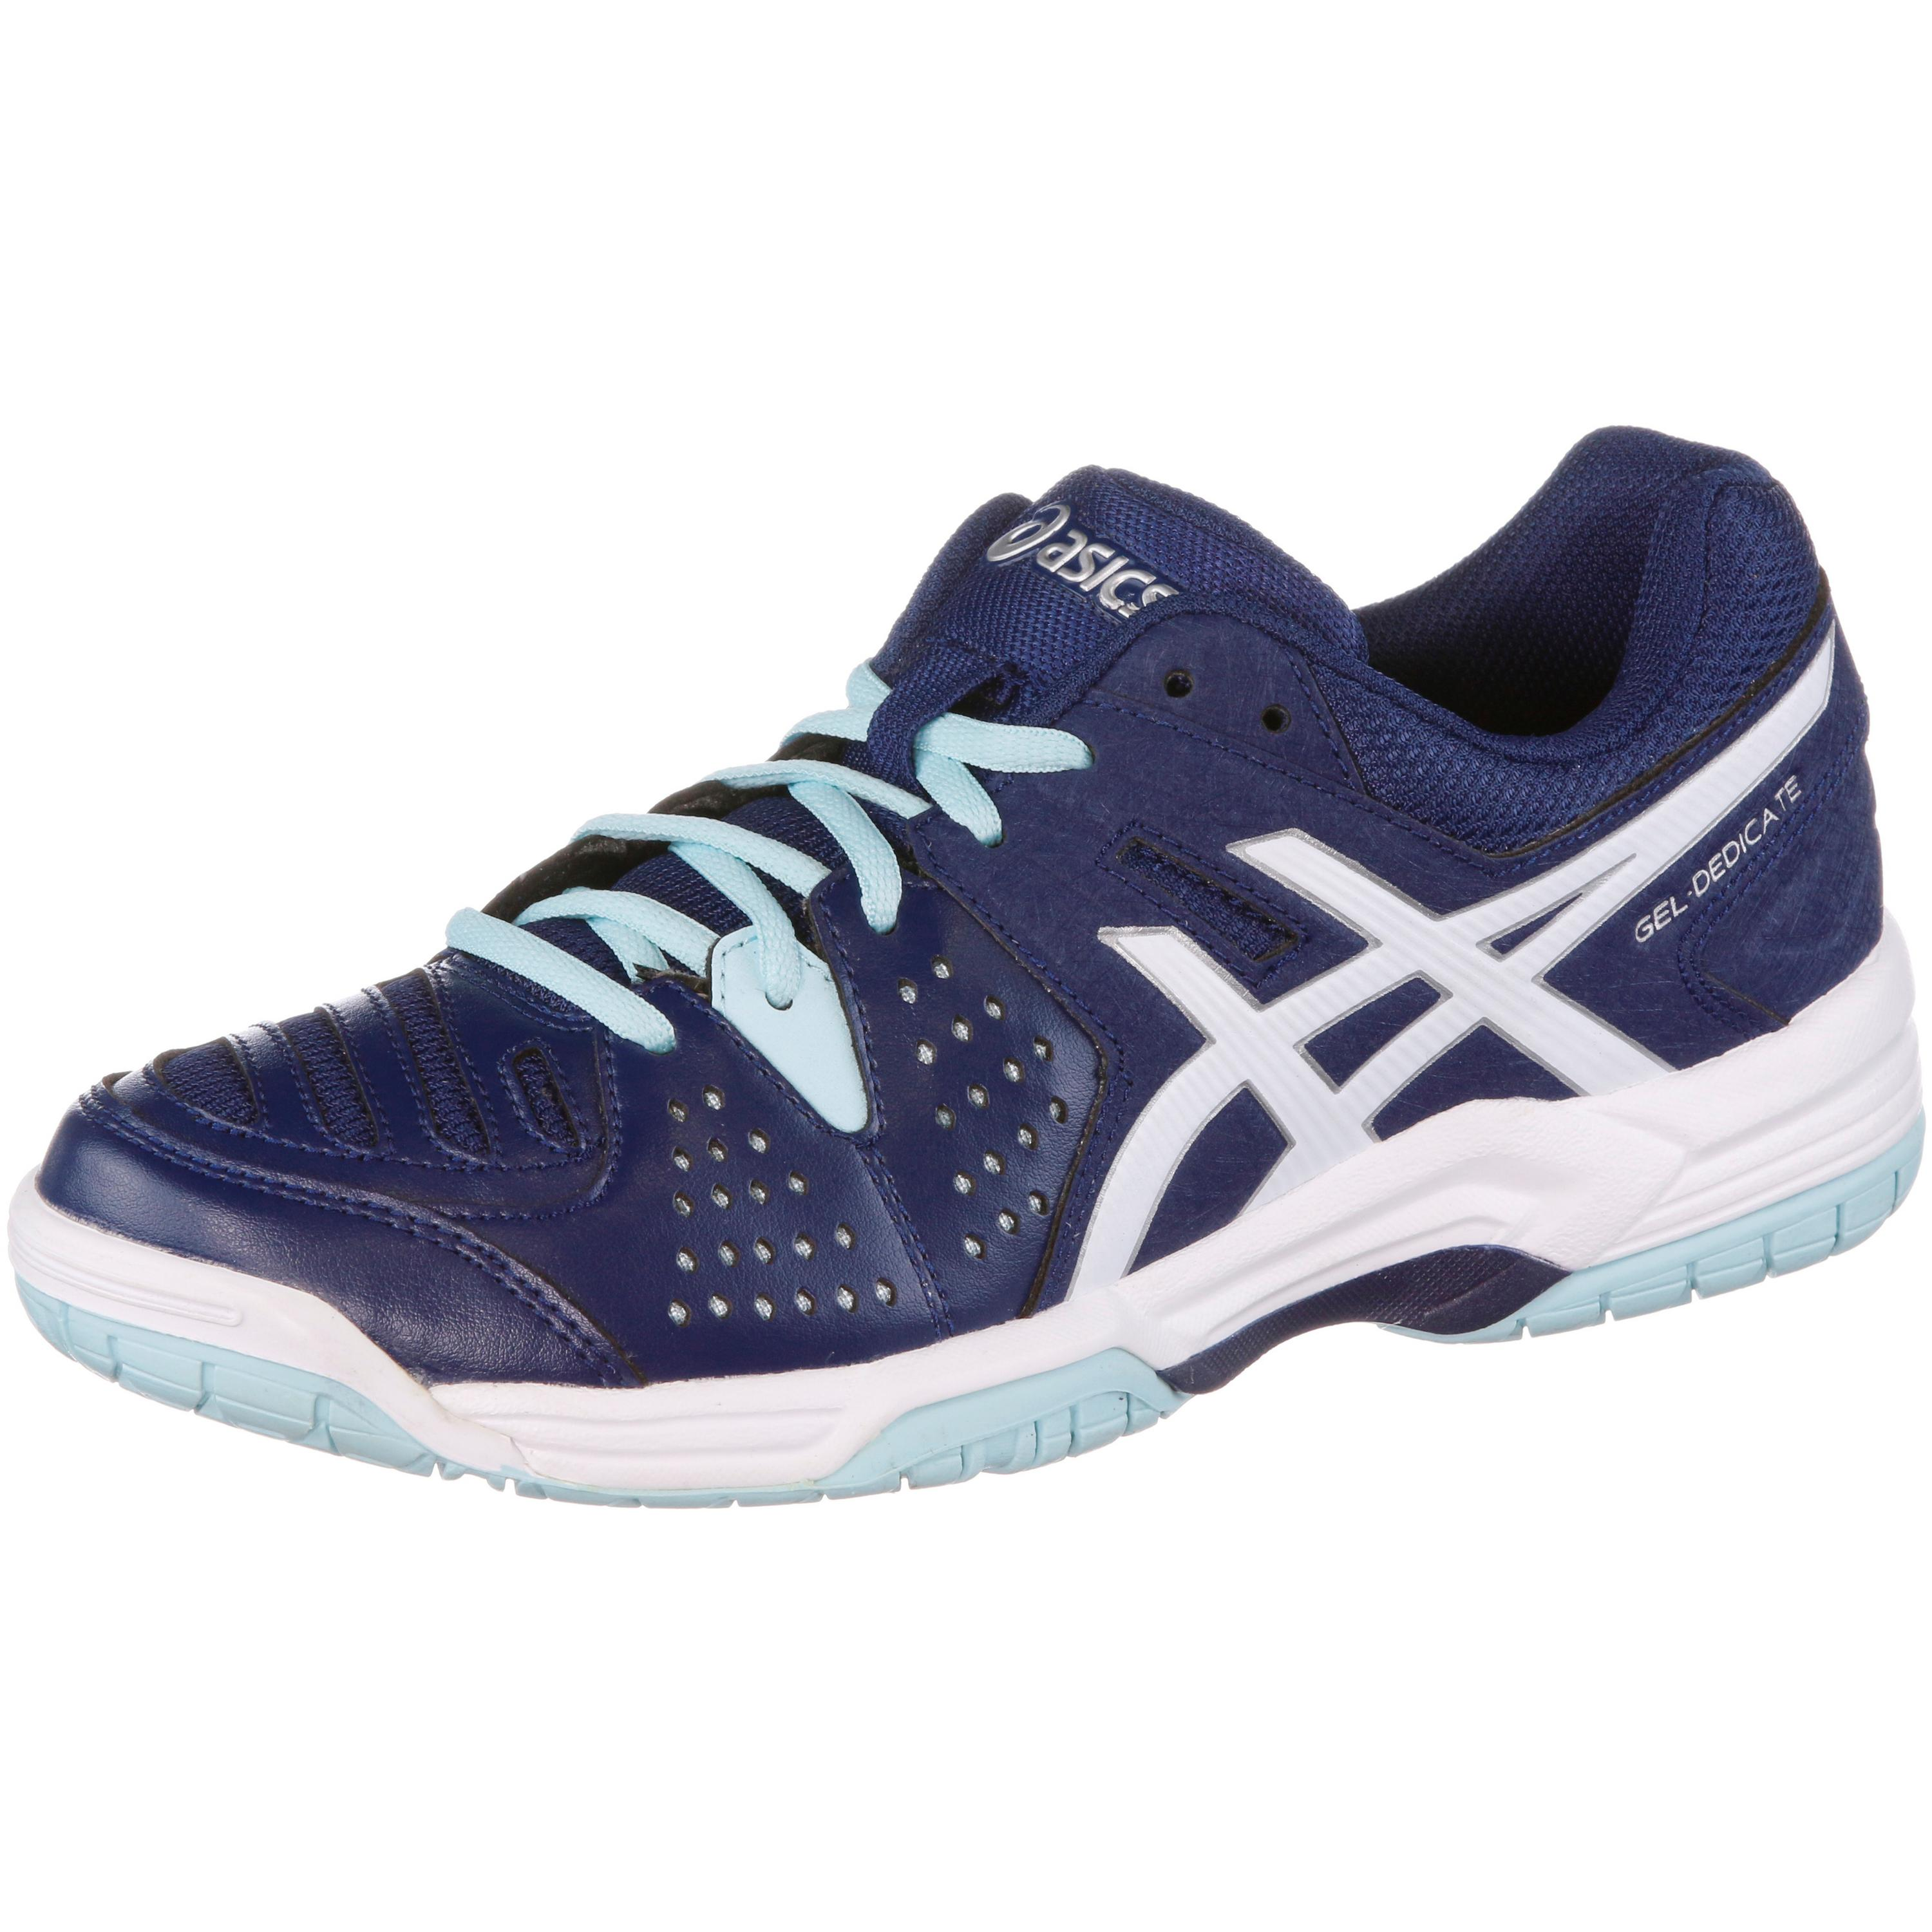 asics gel dedicate 4 damen preisvergleich tennisschuh g nstig kaufen bei. Black Bedroom Furniture Sets. Home Design Ideas